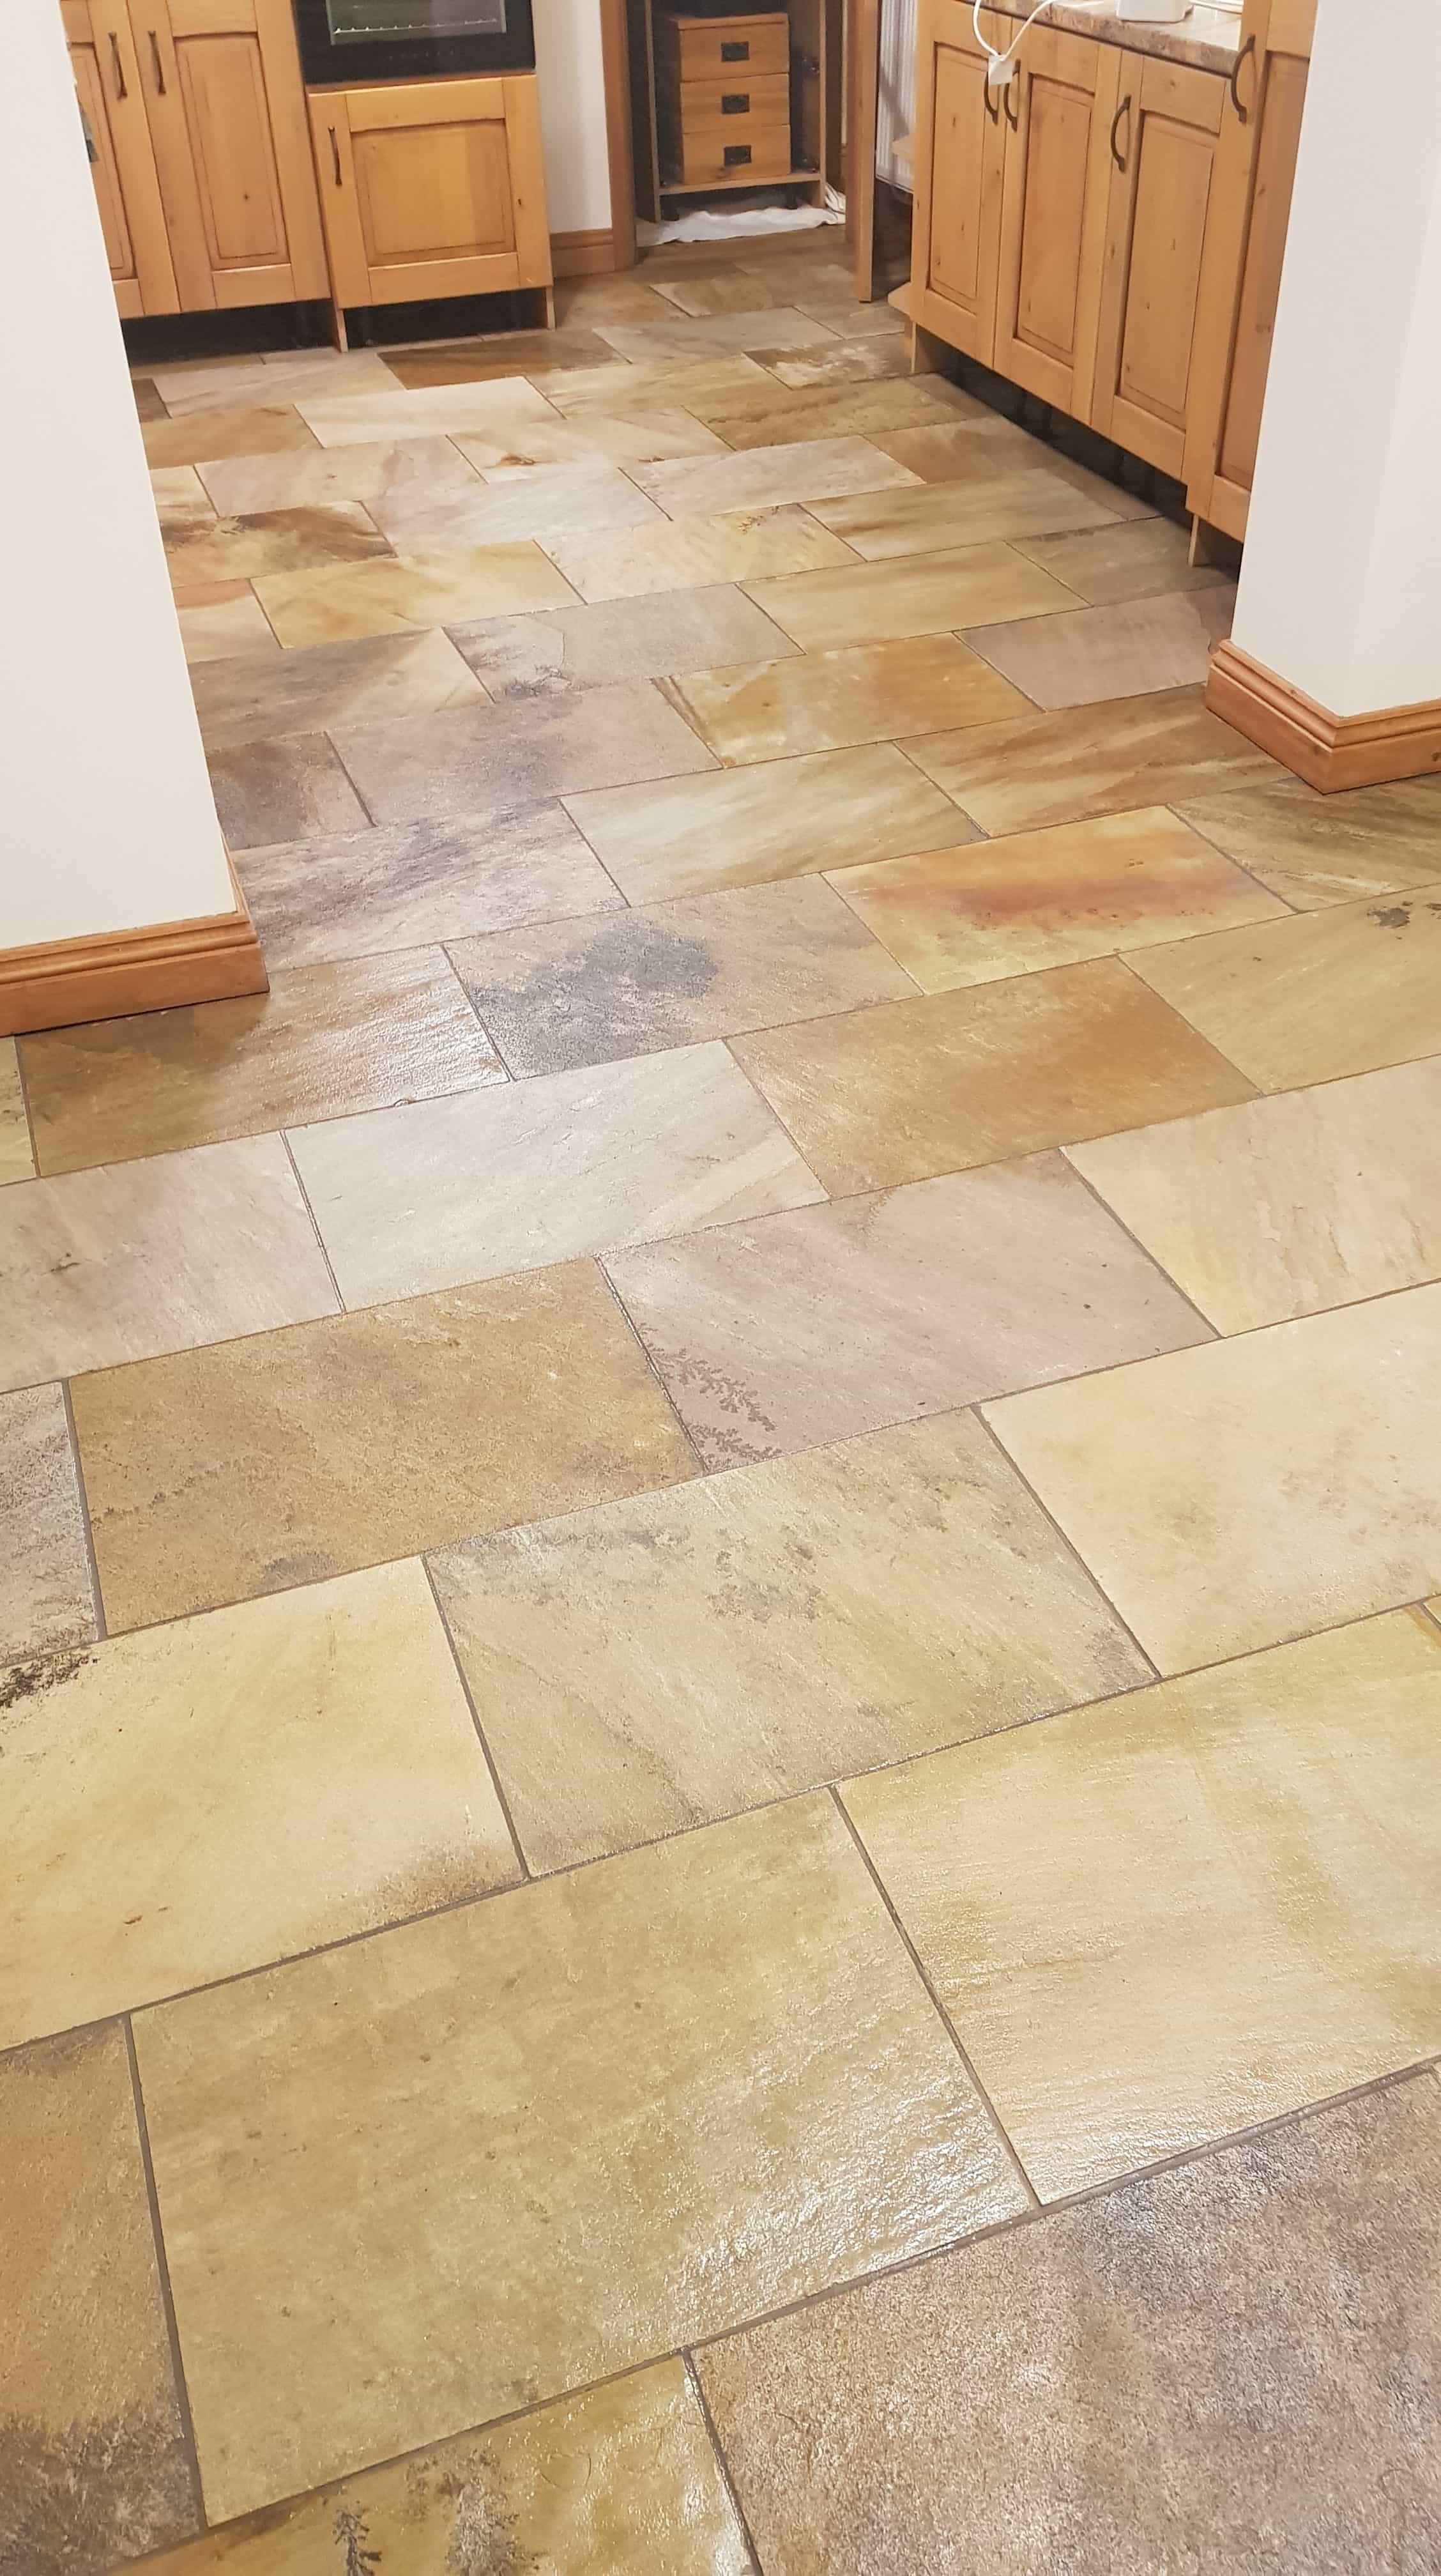 Sandstone Tiled Floor After Renovation in Mapplewell